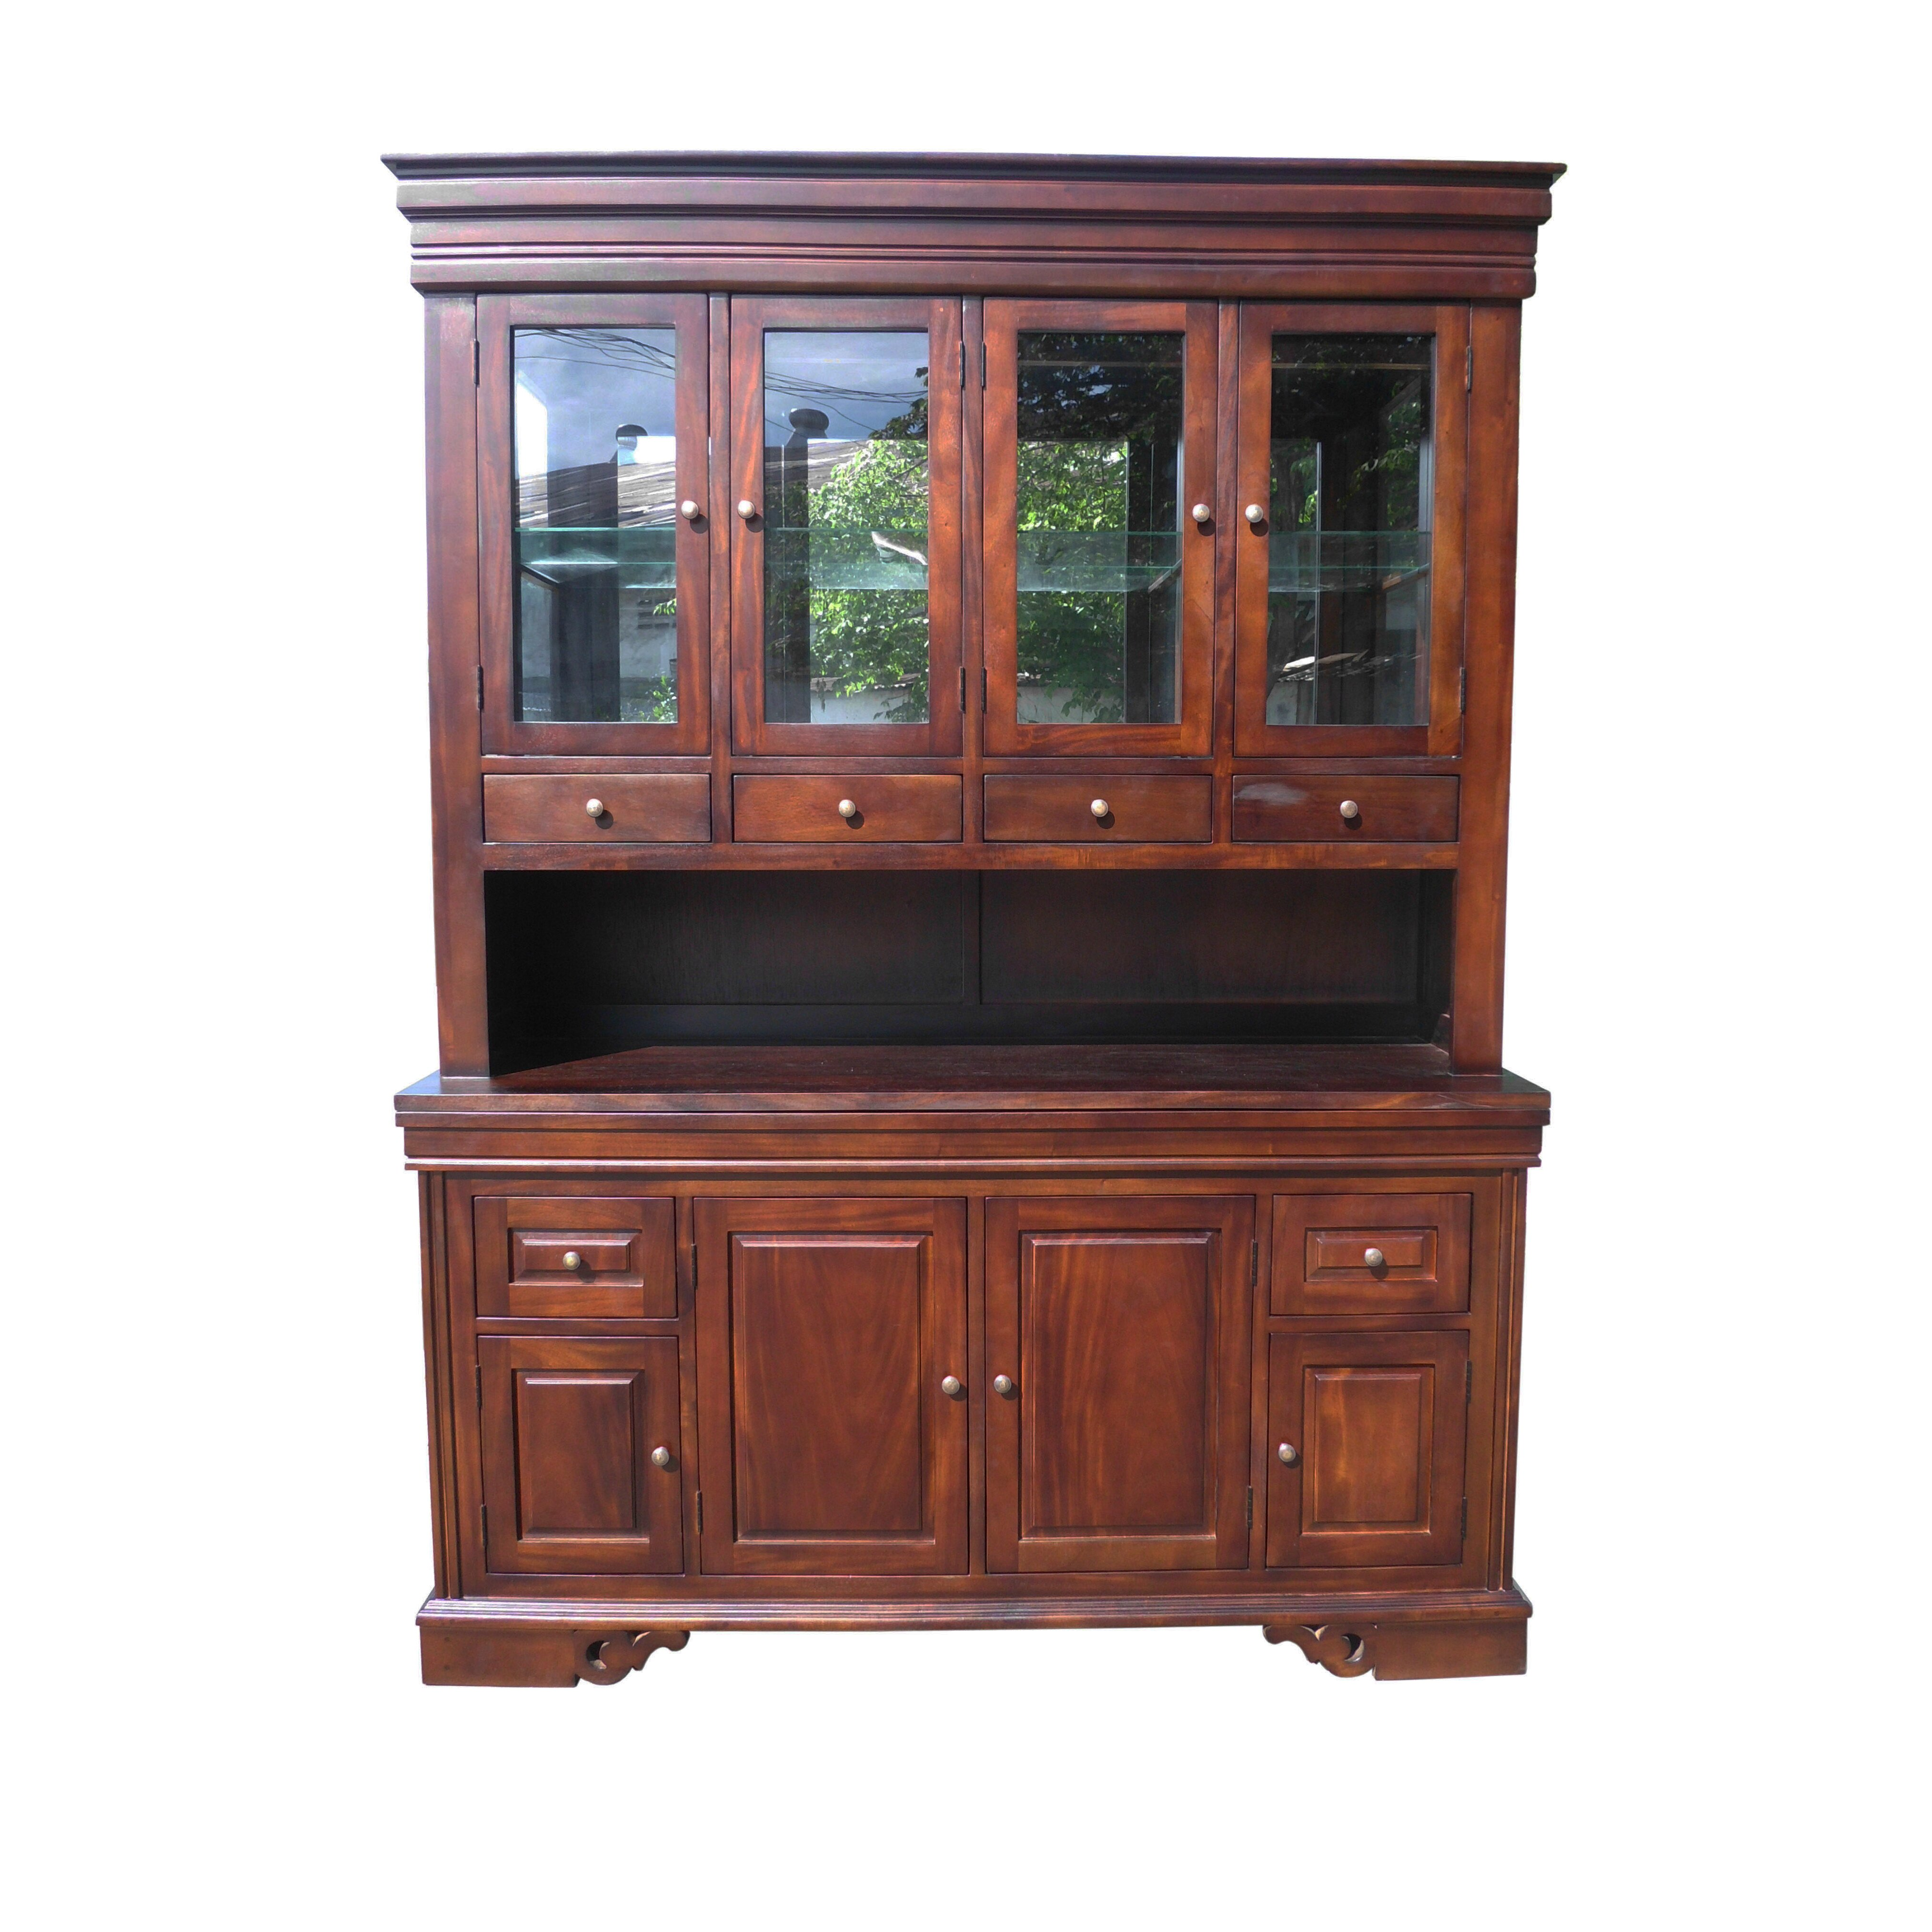 D art collection cambria china cabinet wayfair for Wayfair kitchen cabinets